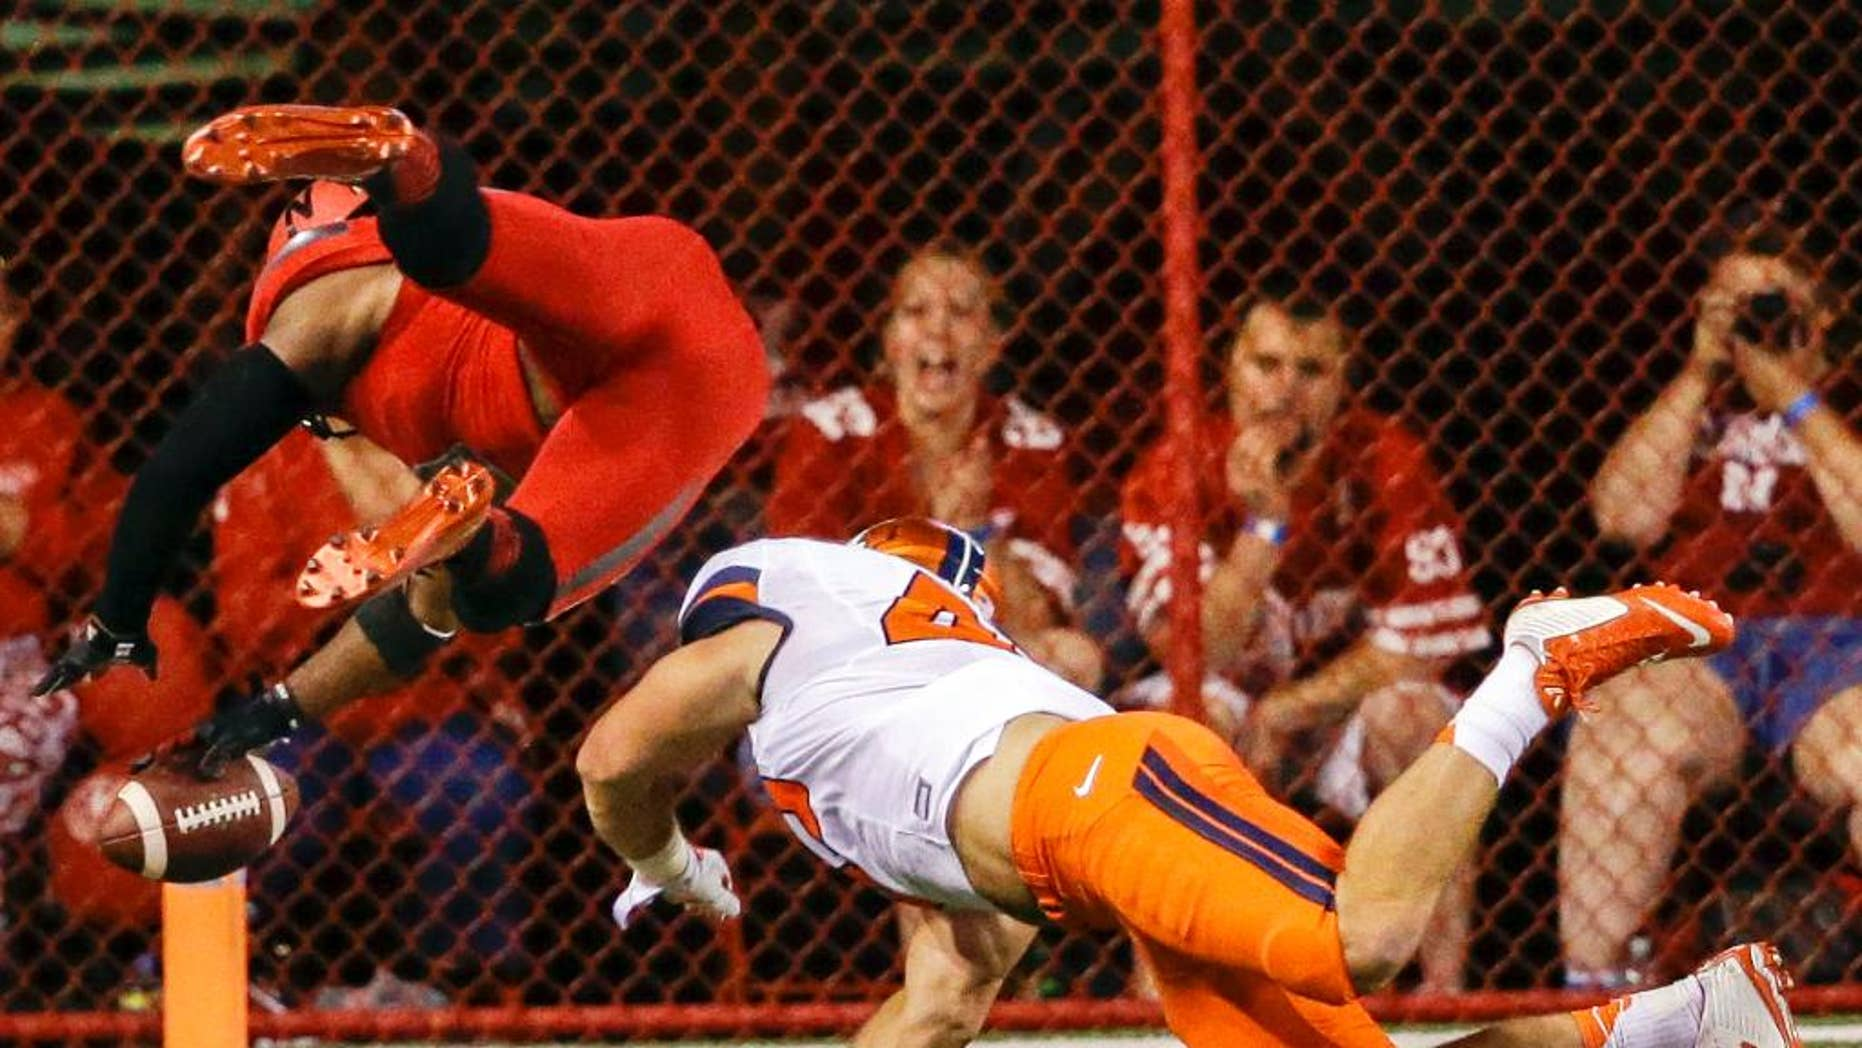 Nebraska running back Ameer Abdullah, left, leaps into the end zone for a touchdown past Illinois linebacker Mason Monheim in the first half of an NCAA college football game in Lincoln, Neb., Saturday, Sept. 27, 2014. (AP Photo/Nati Harnik)